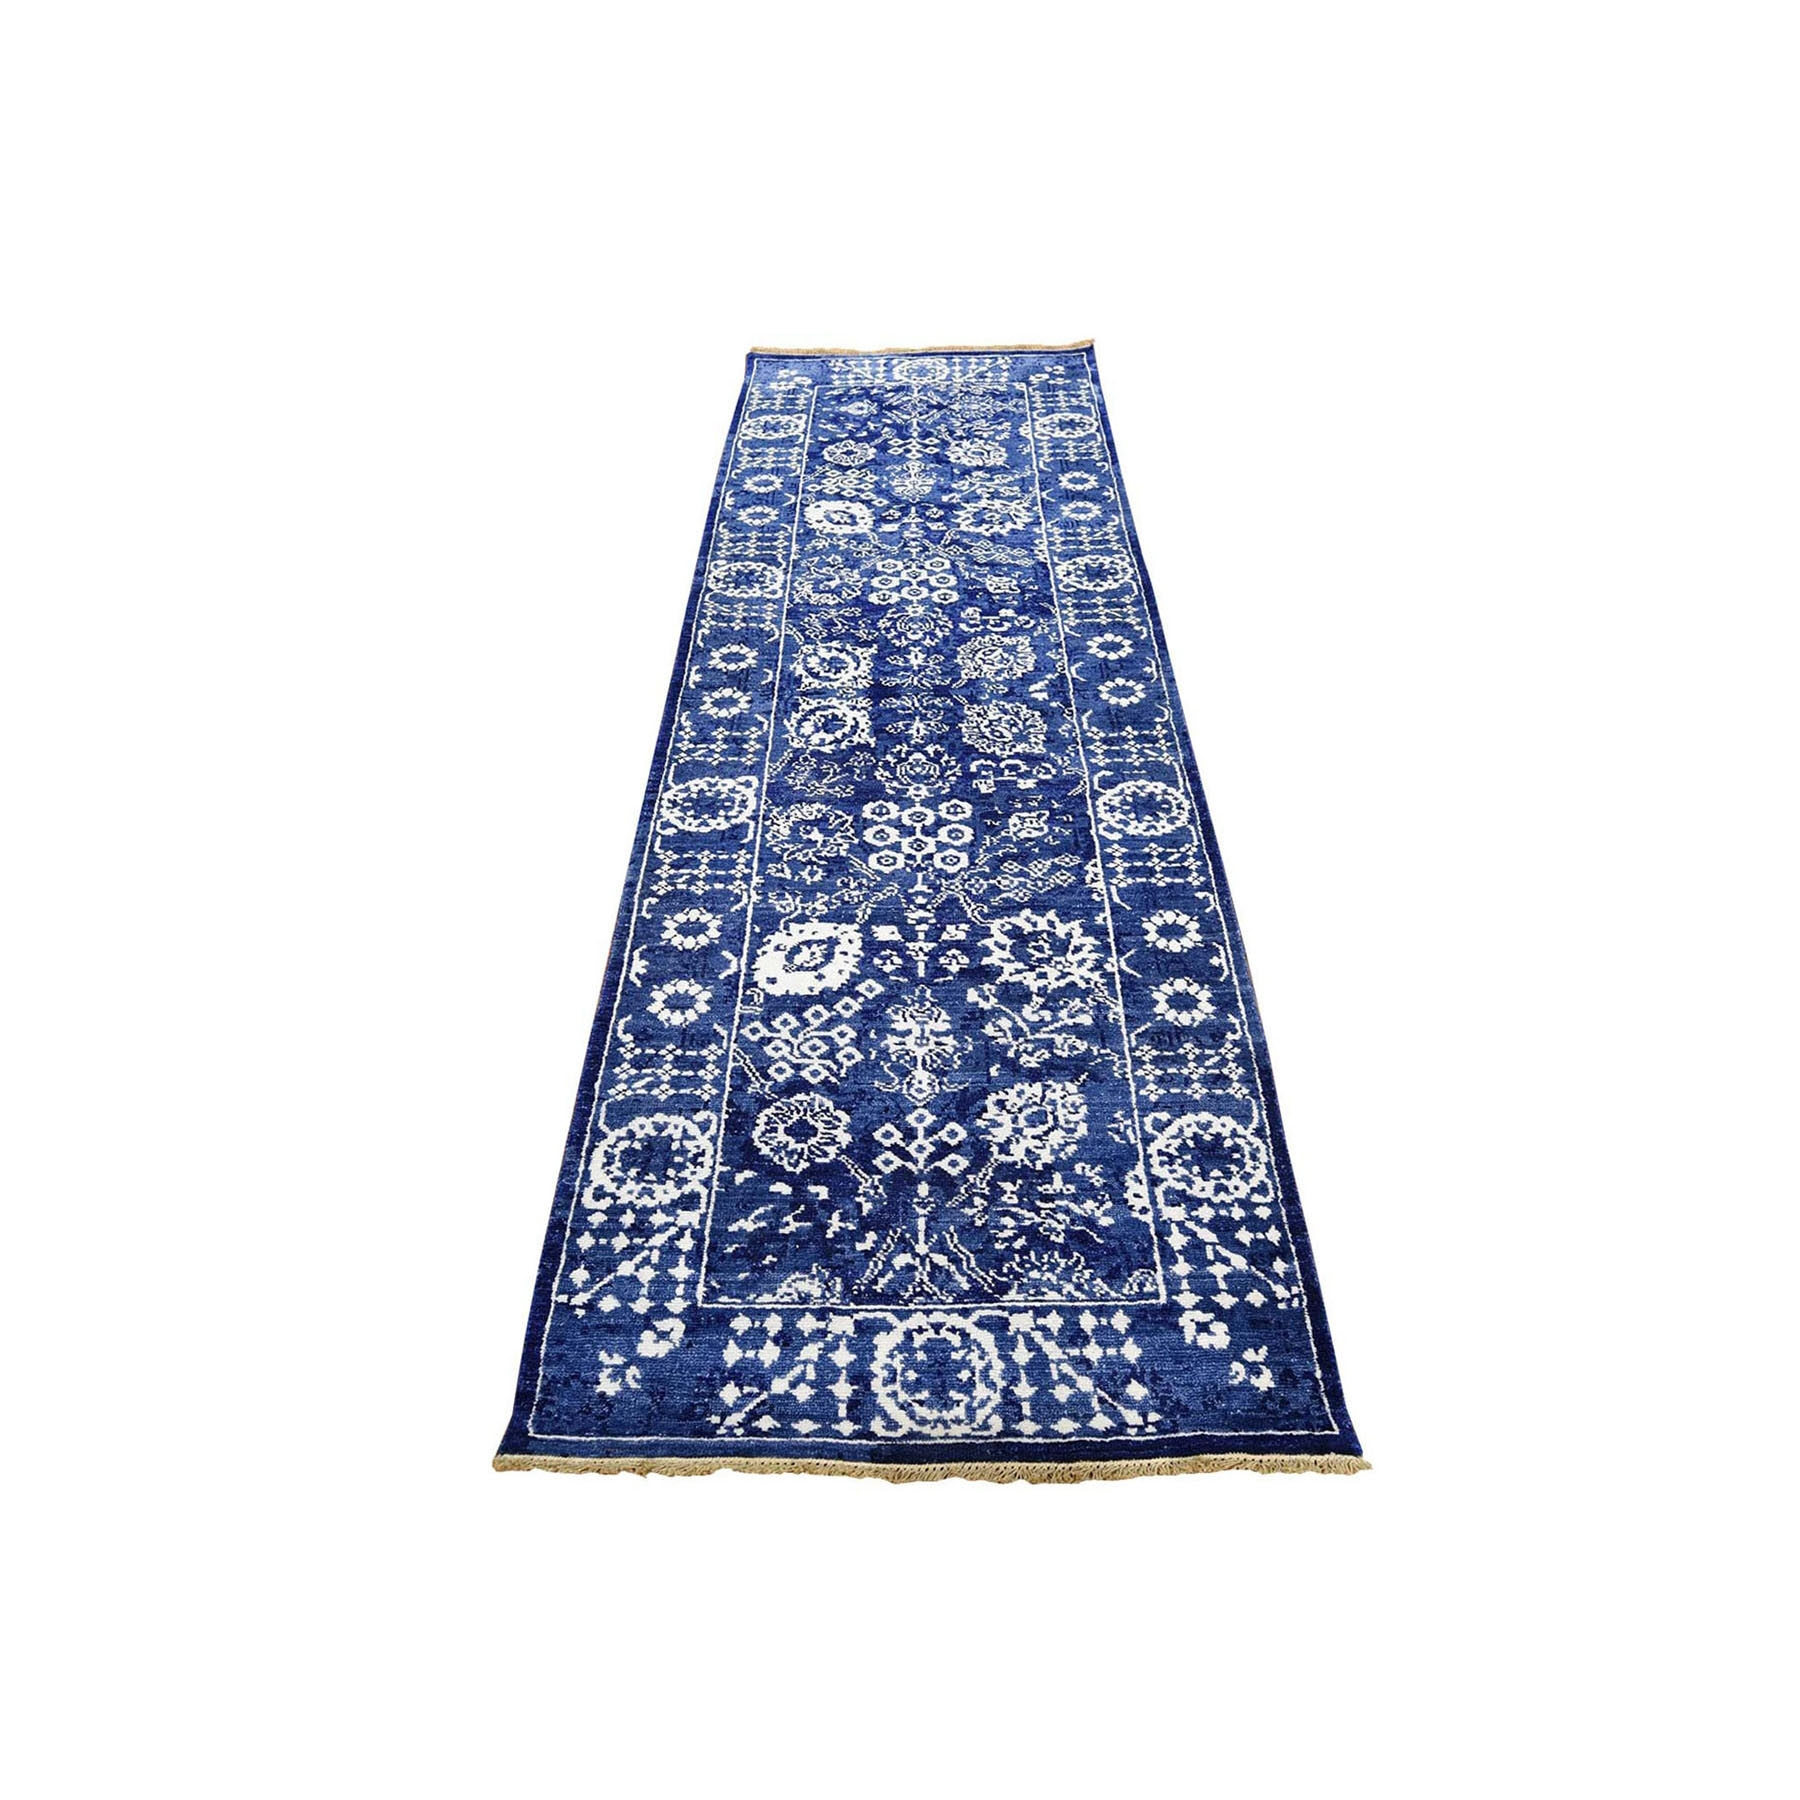 "2'8""x8'2"" Blue Wool and Silk Tone On Tone Tabriz Runner Hand Woven Oriental Rug"